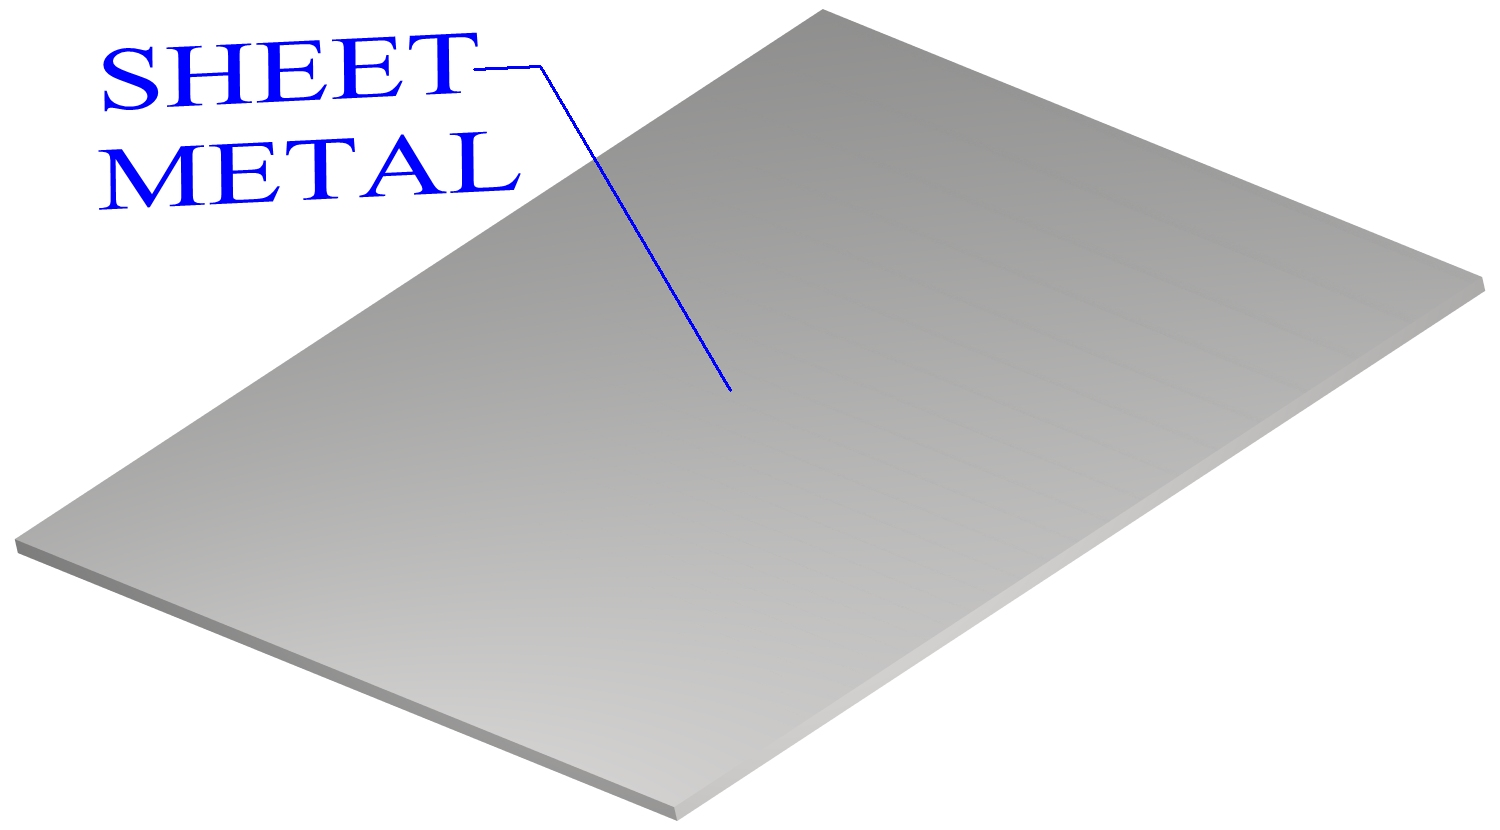 Sheet Metal Forming Basics And Processes Themech In